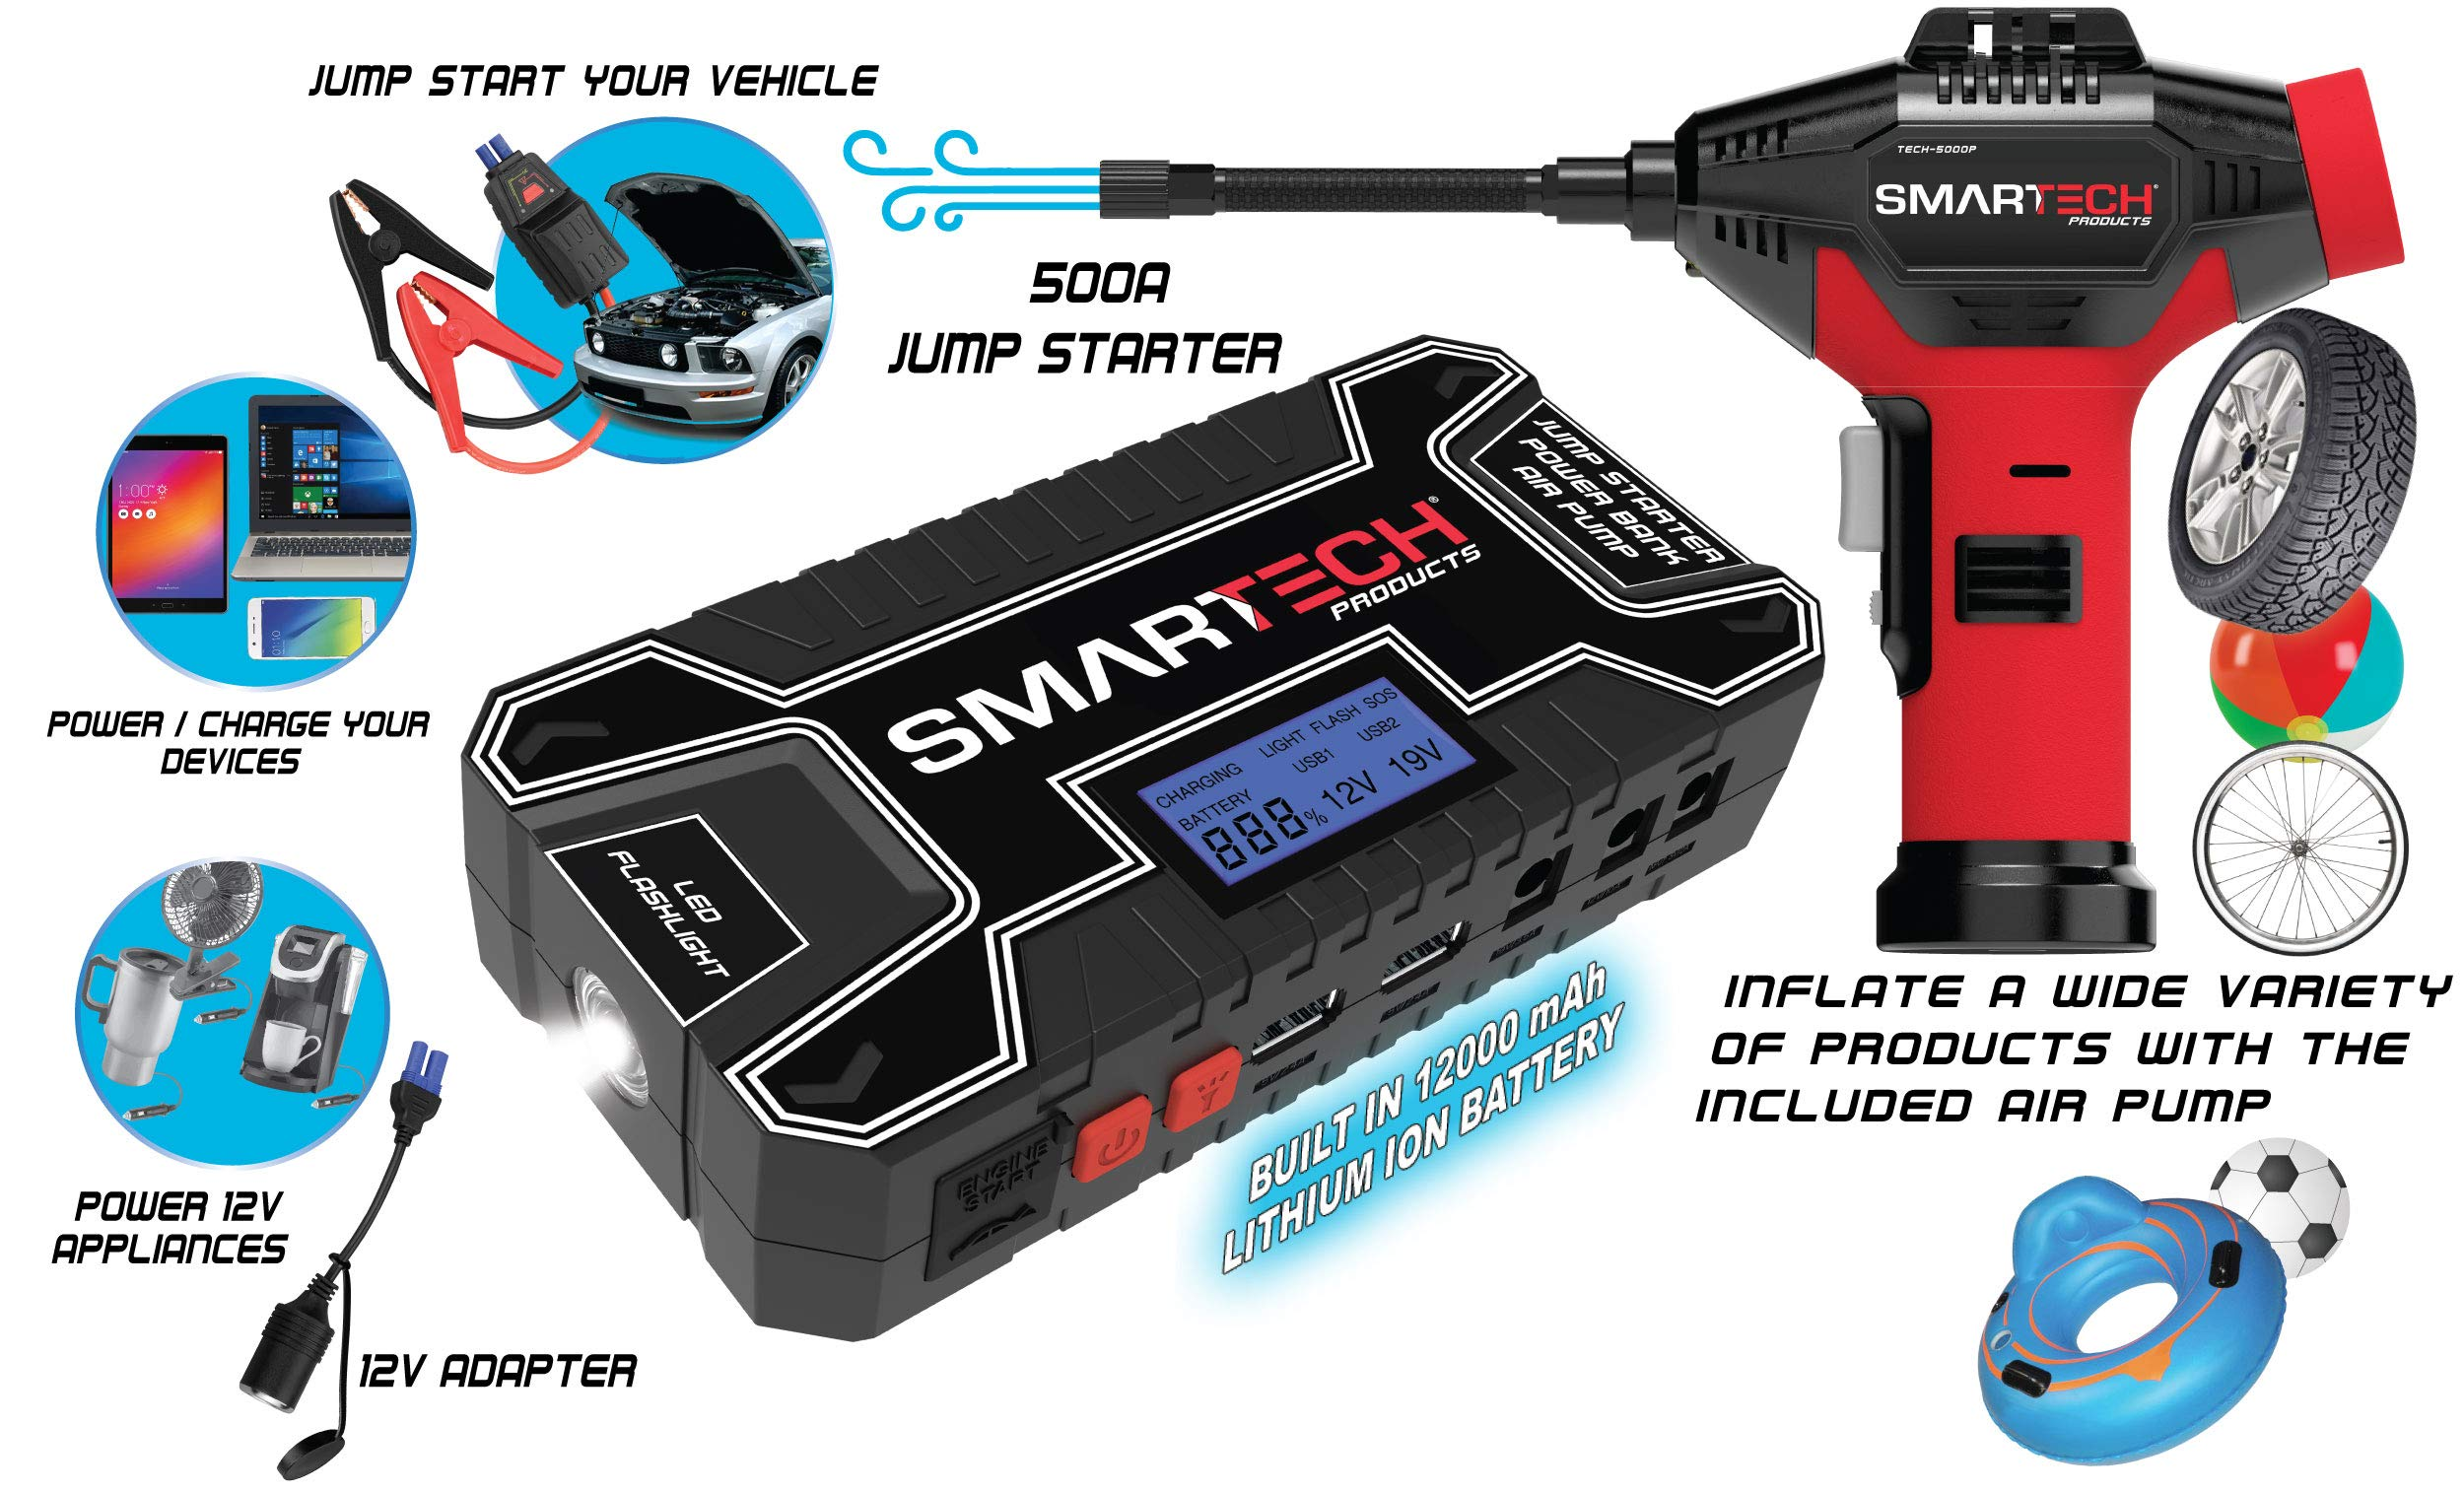 Smartech Power Kit Portable Jump Starter Power Bank Air Pump Tire inflator Air Compressor by Smartech Products (Image #3)